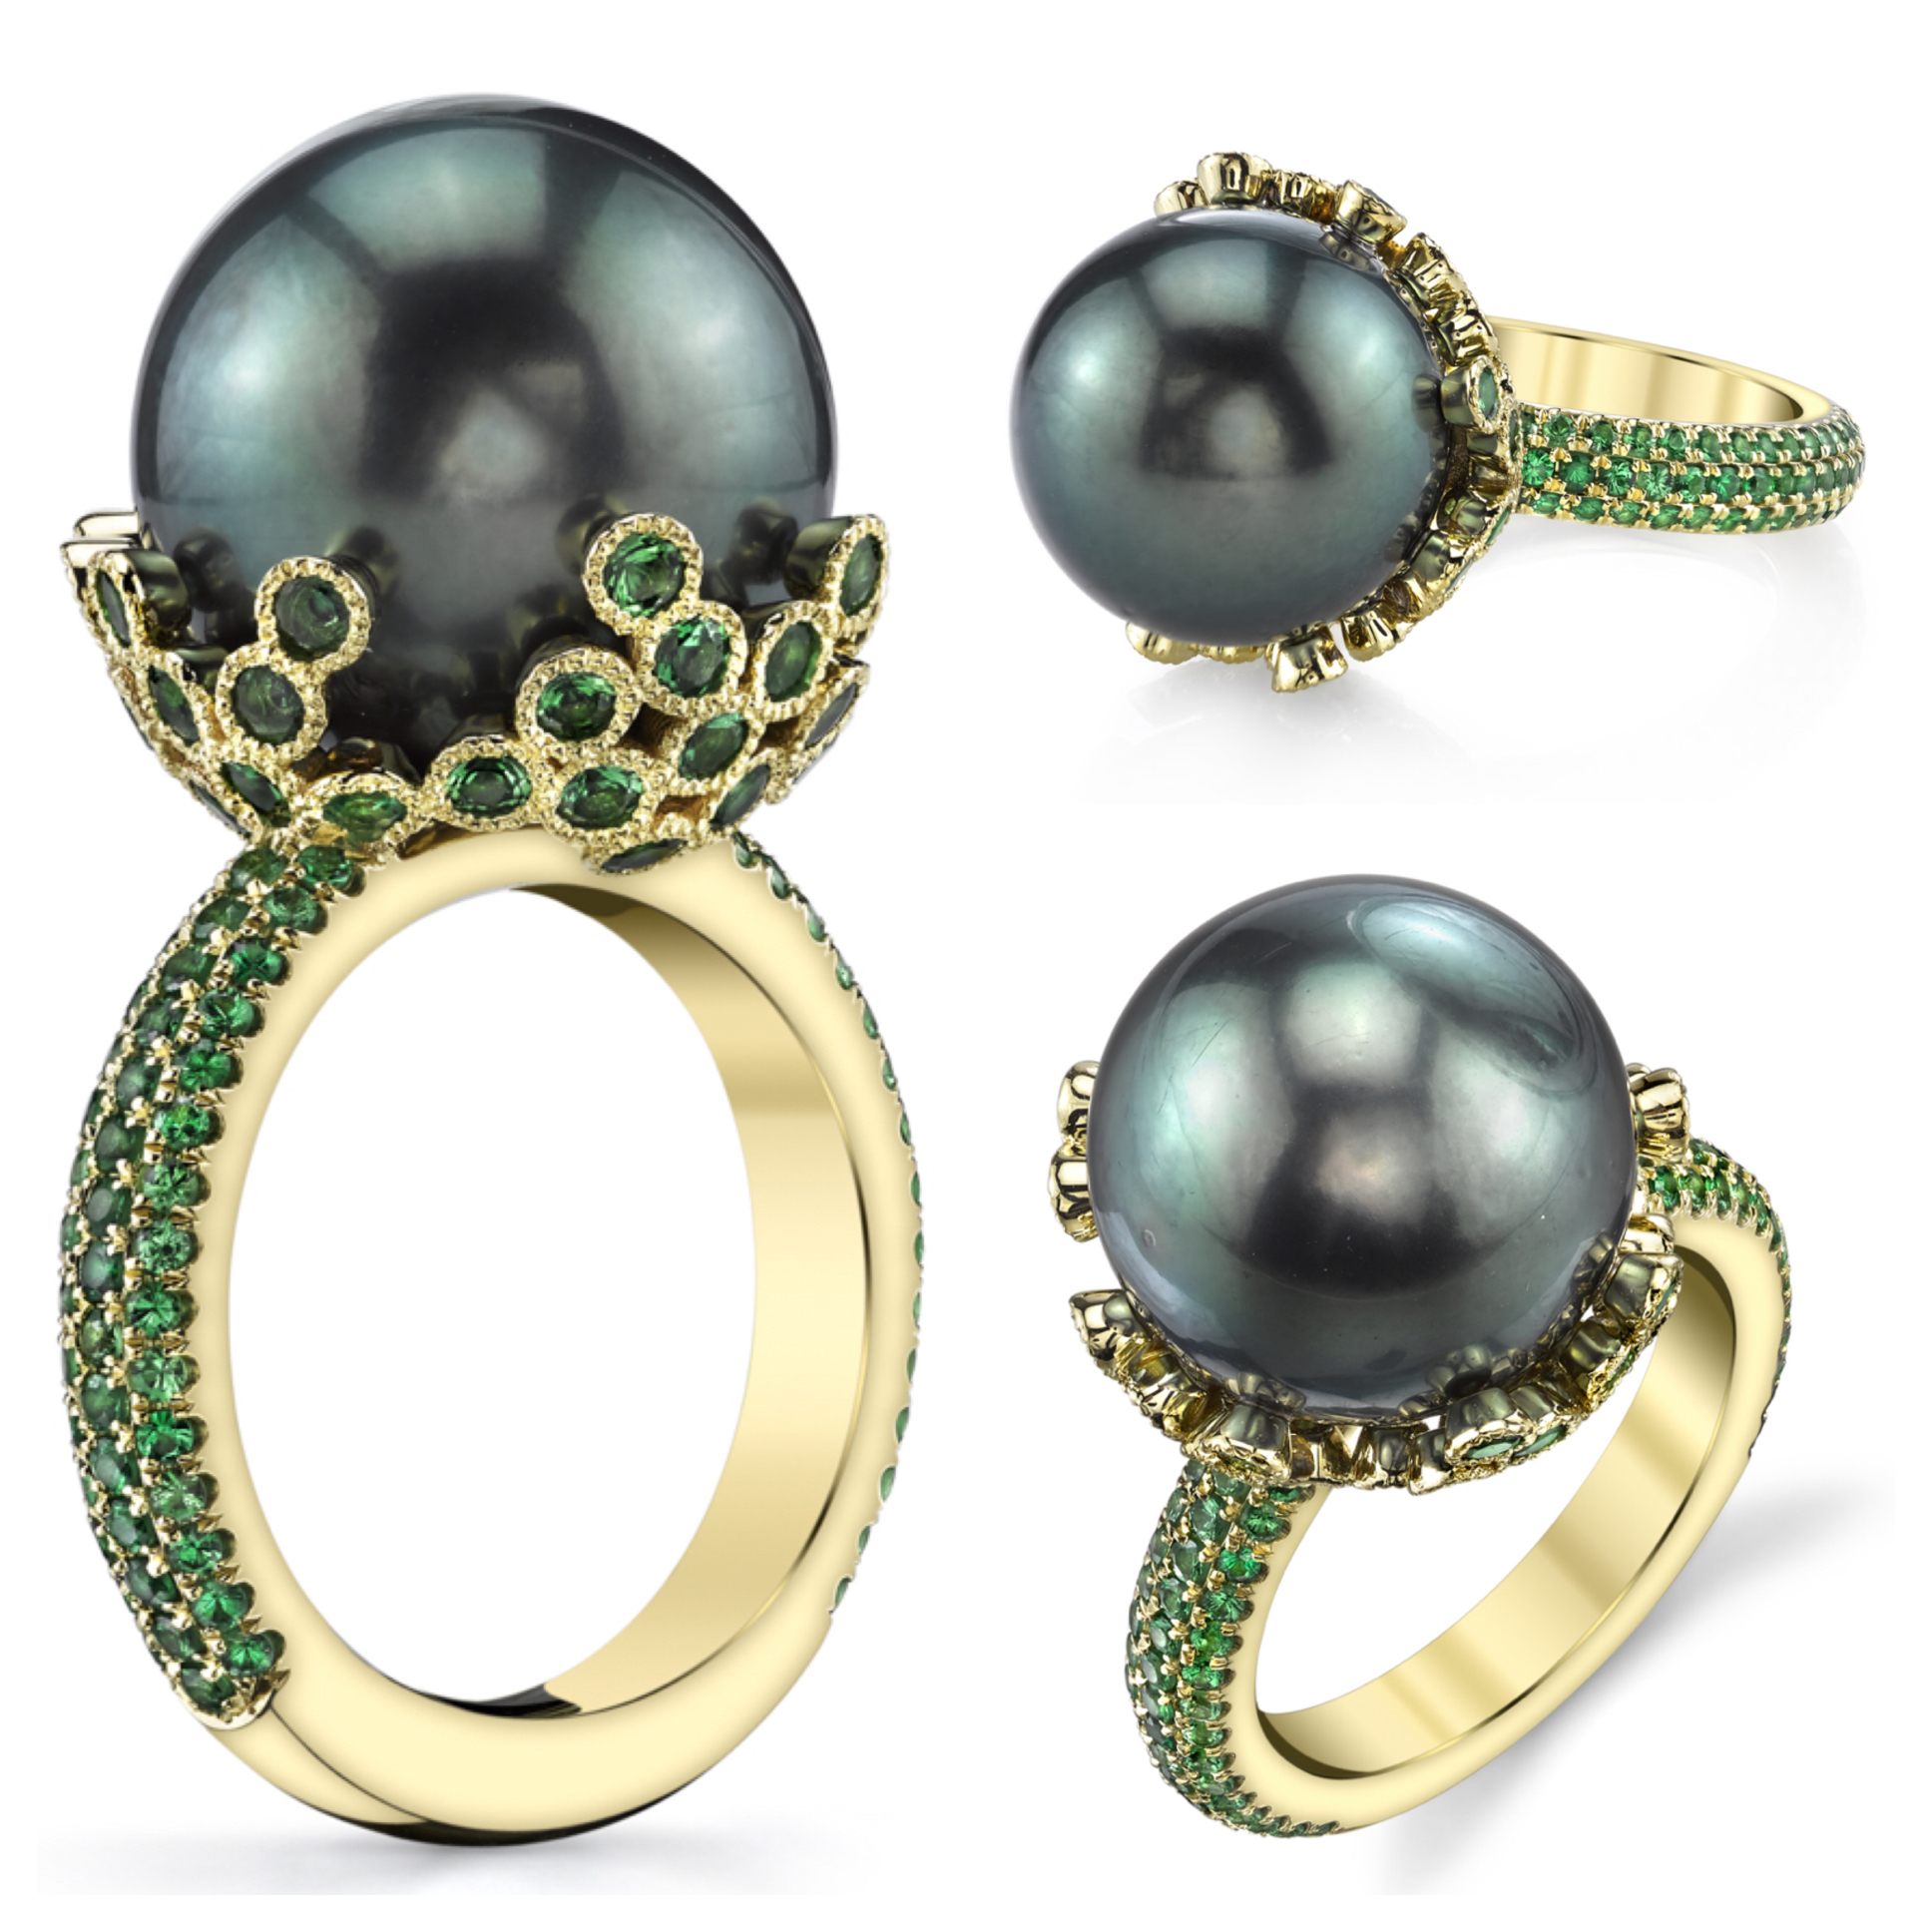 15mm Tahitian Pearl set in 18 Karat Yellow Gold and accented with Green Tsavorites